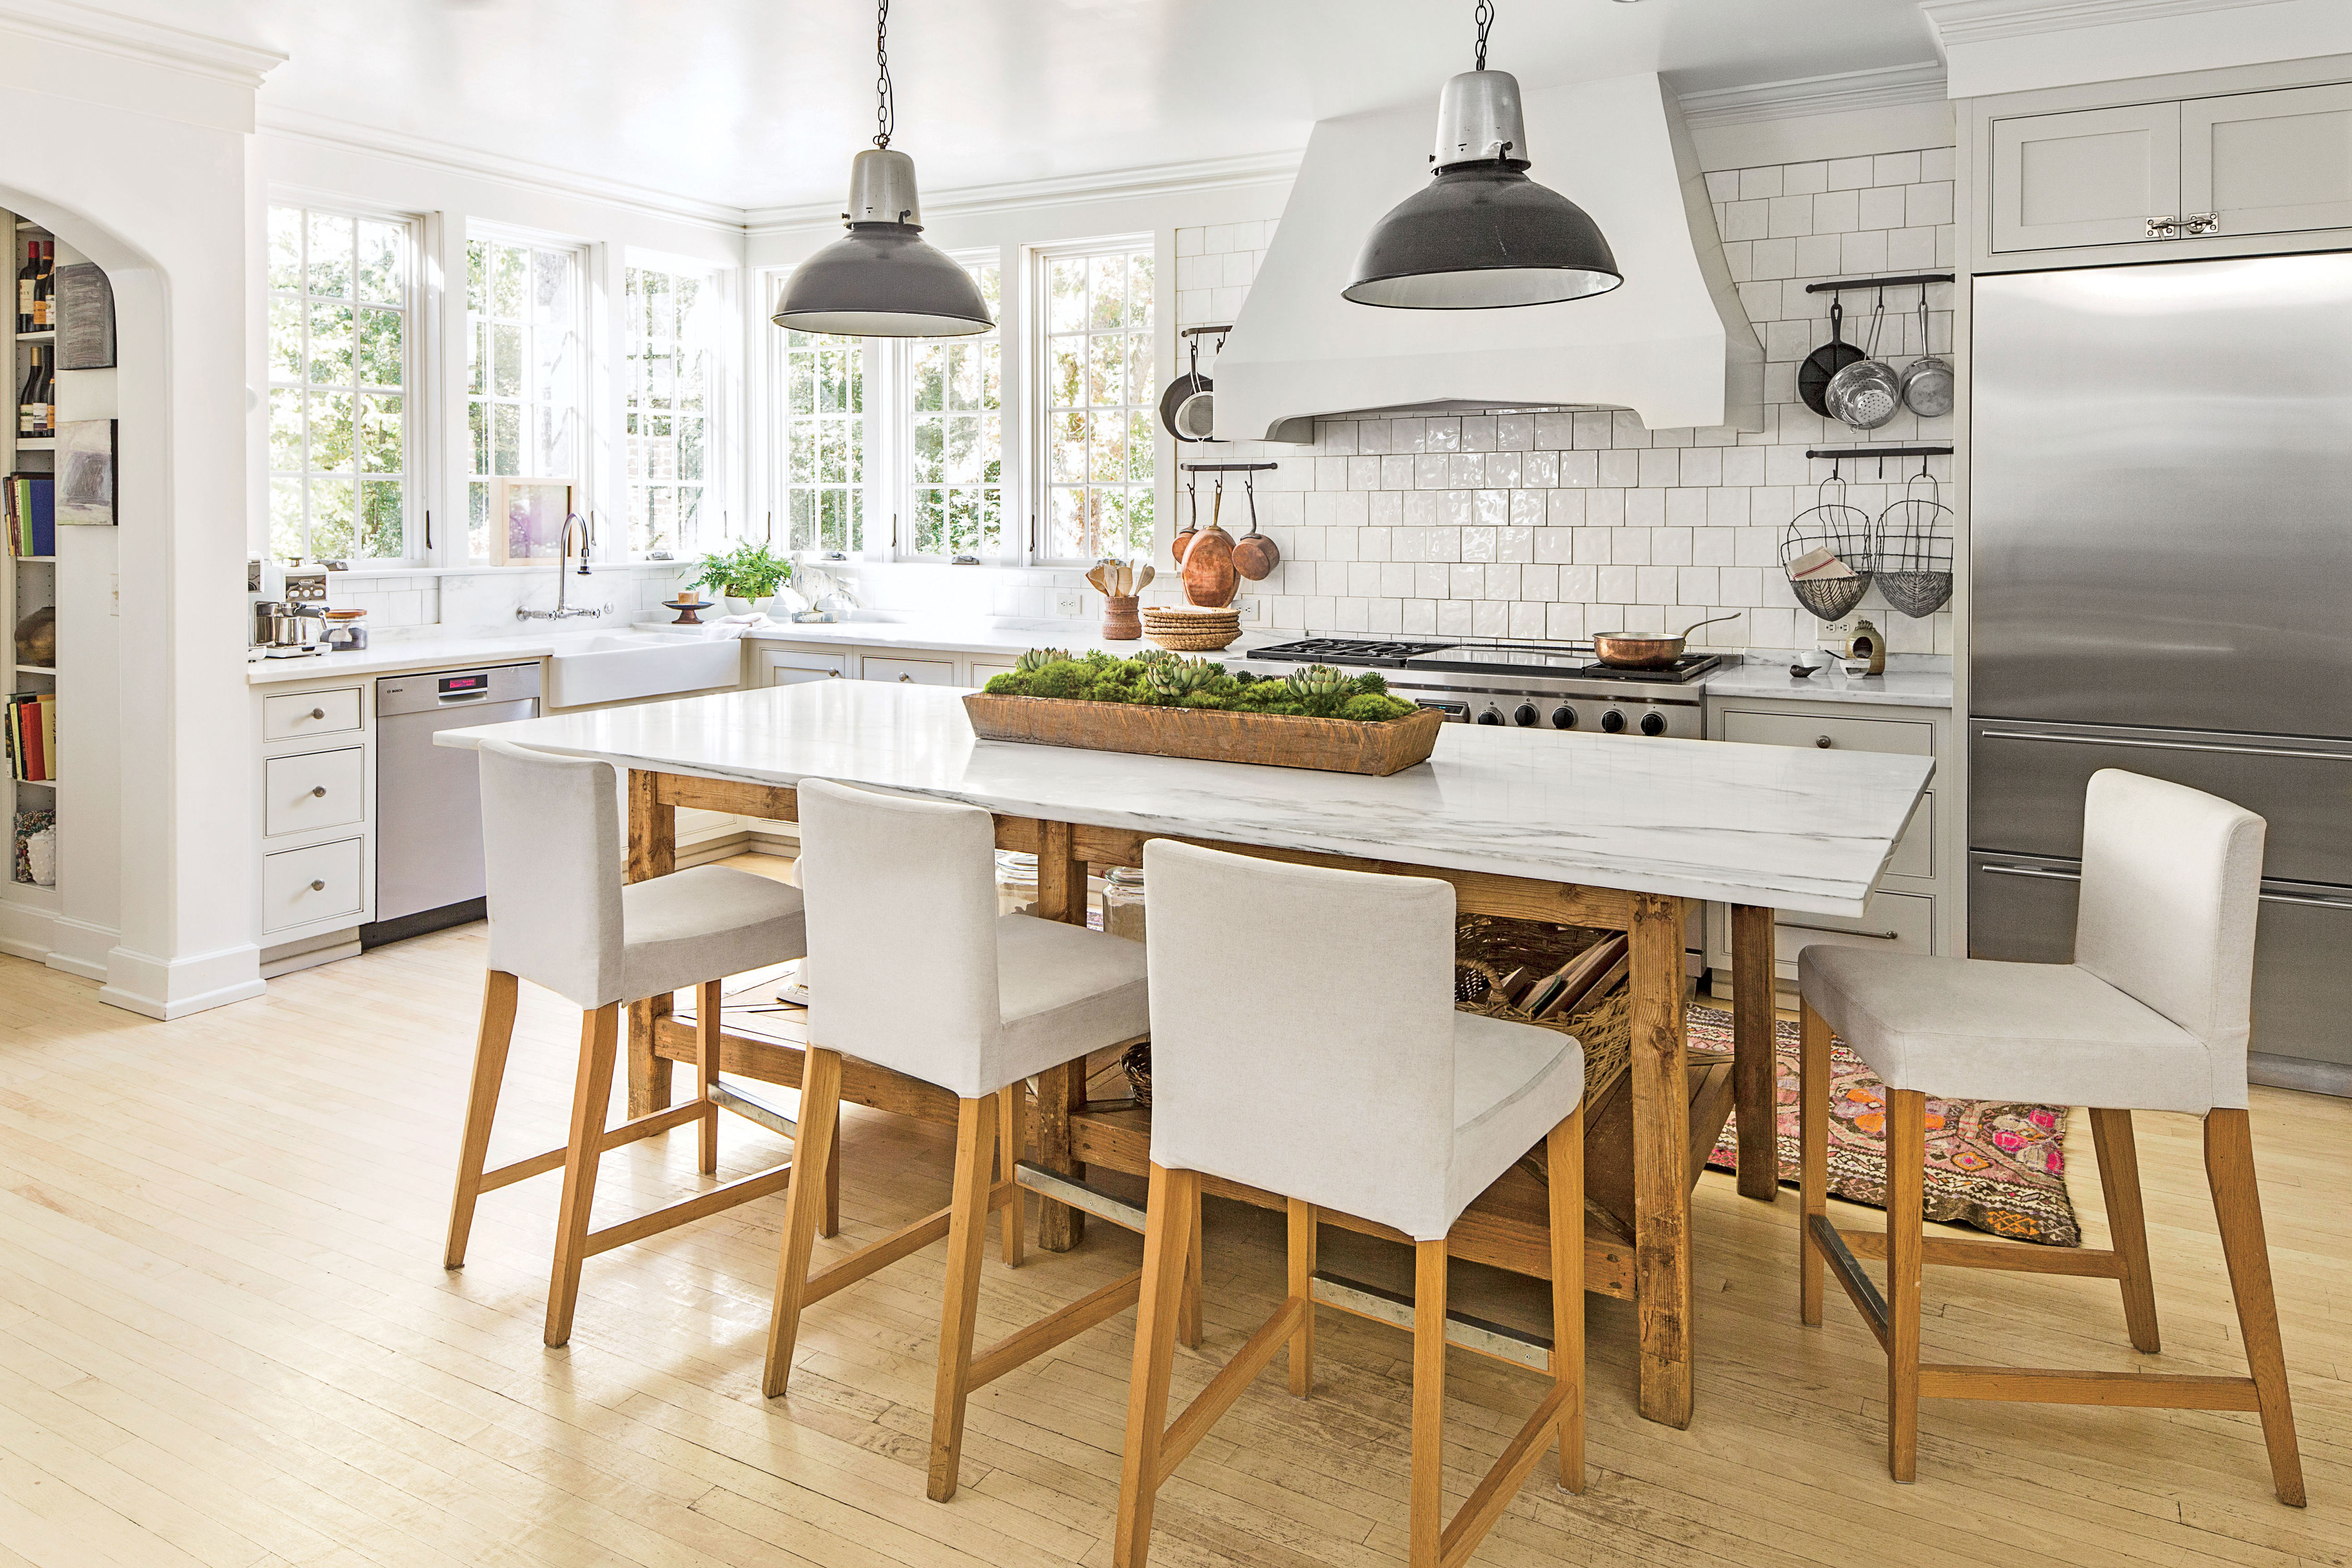 3 Tips for a Clutter-Free Kitchen